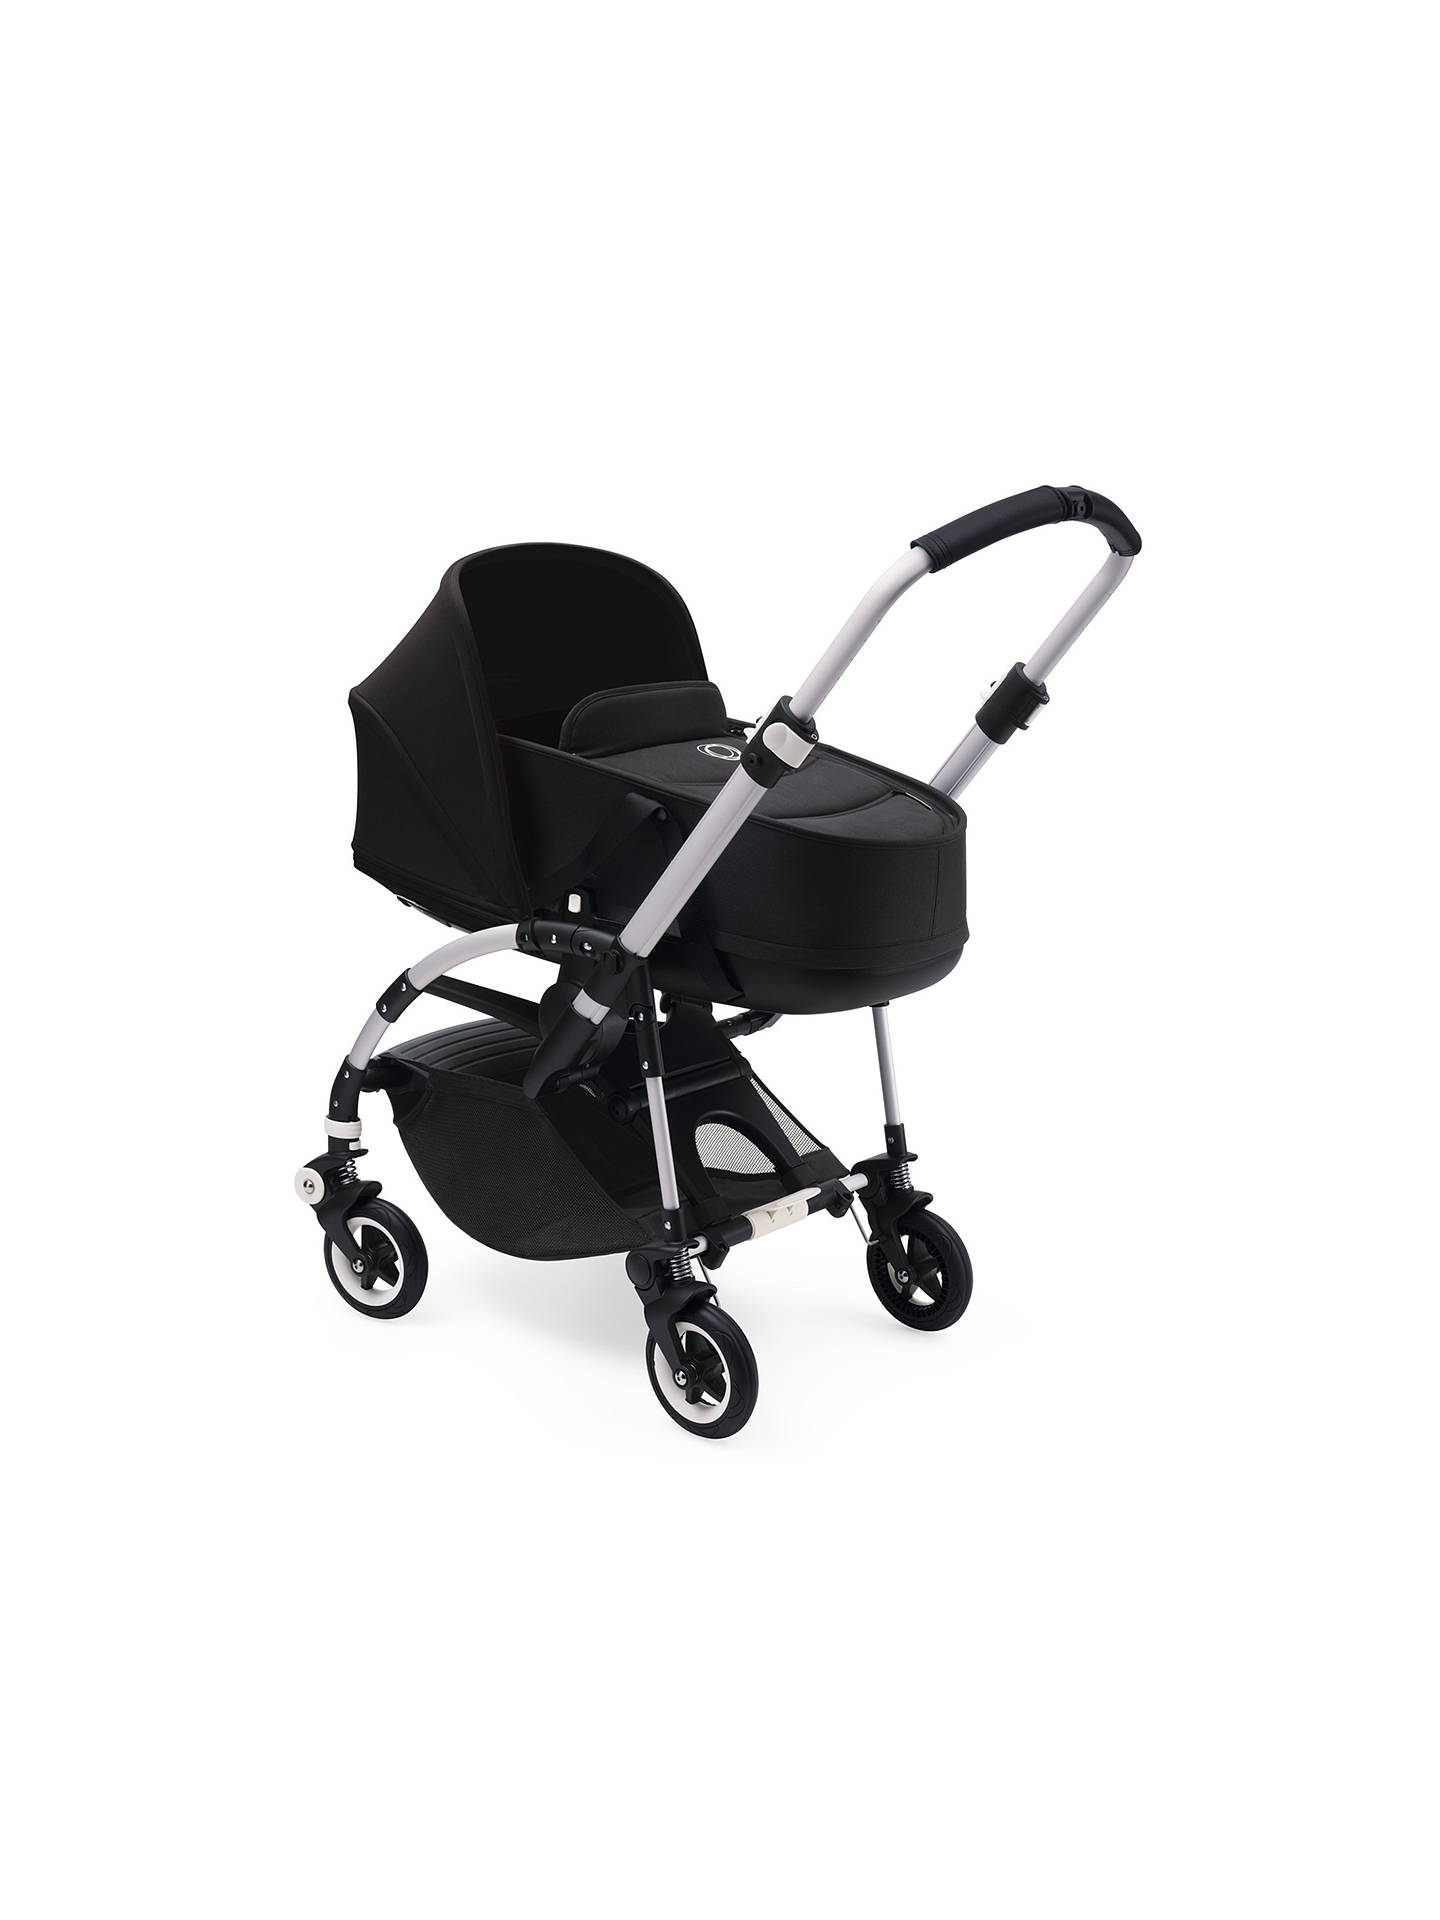 BuyBugaboo Bee 5 Carrycot Fabric, Black Online at johnlewis.com